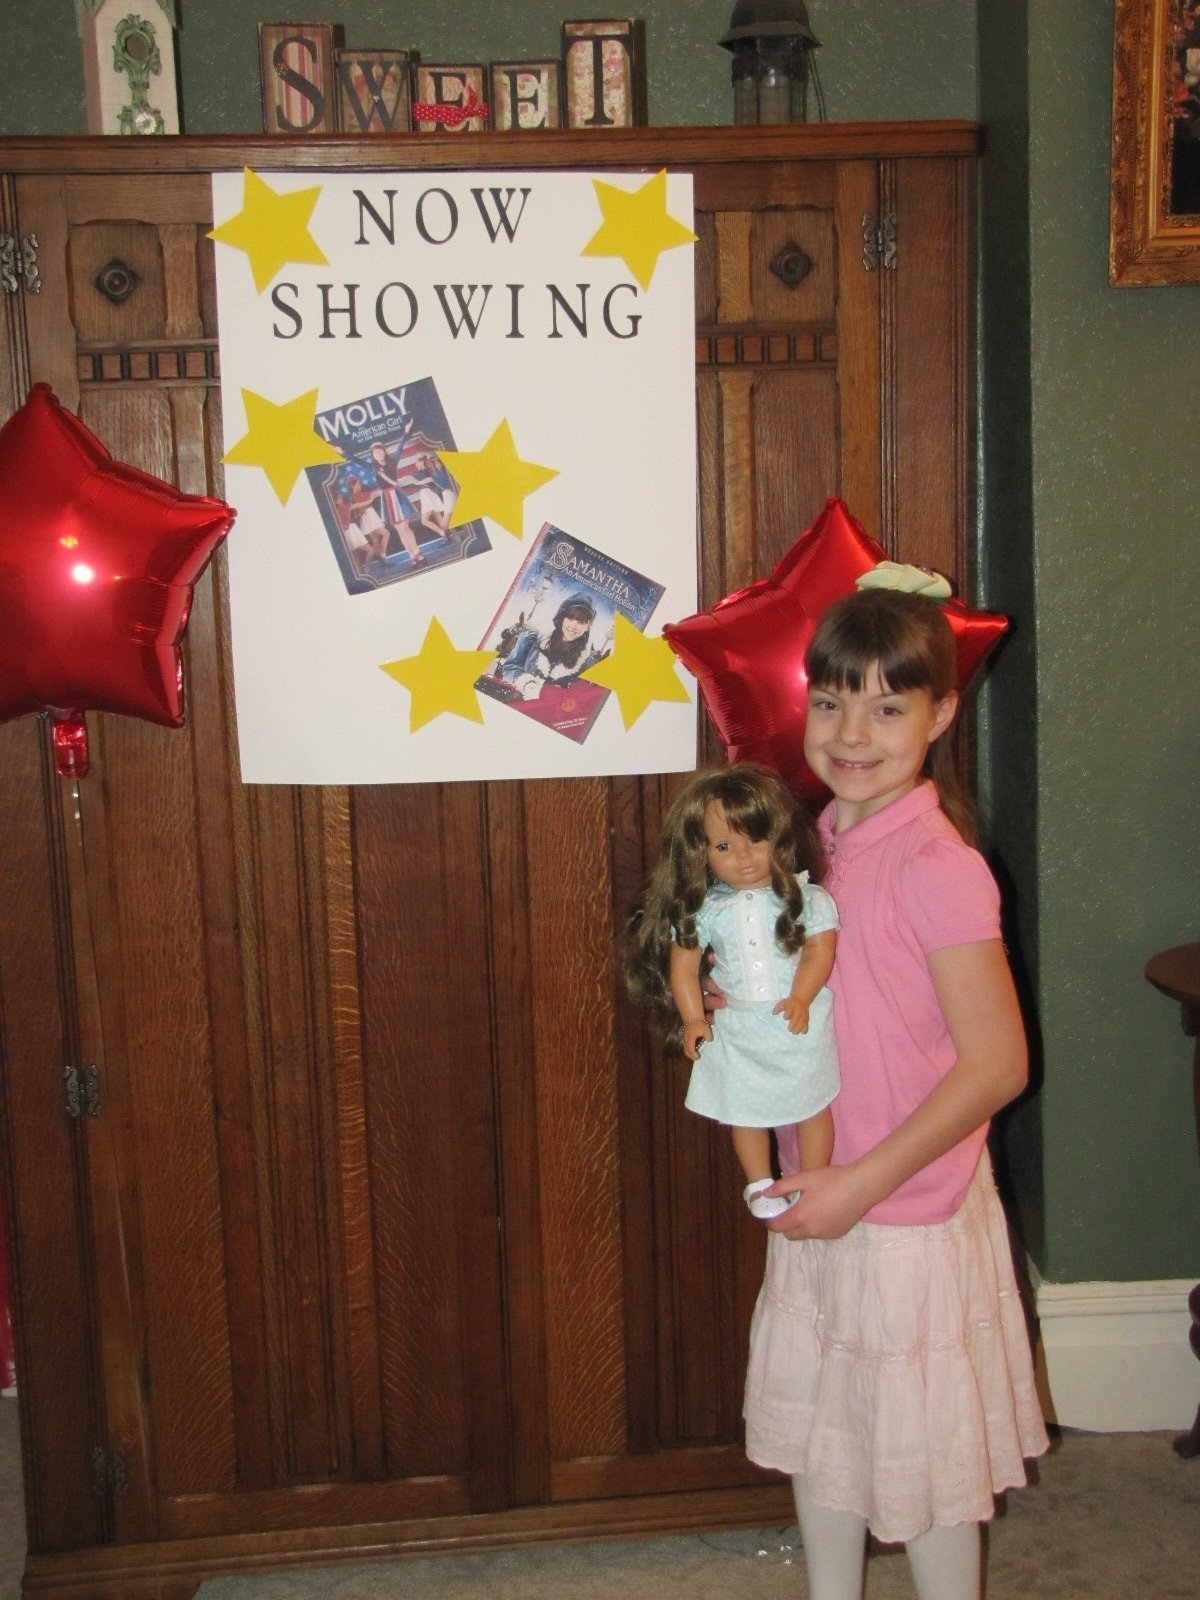 10 Most Recommended Slumber Party Ideas For 10 Year Olds punkin seed productions movie themed birthday slumber party for a 1 2020